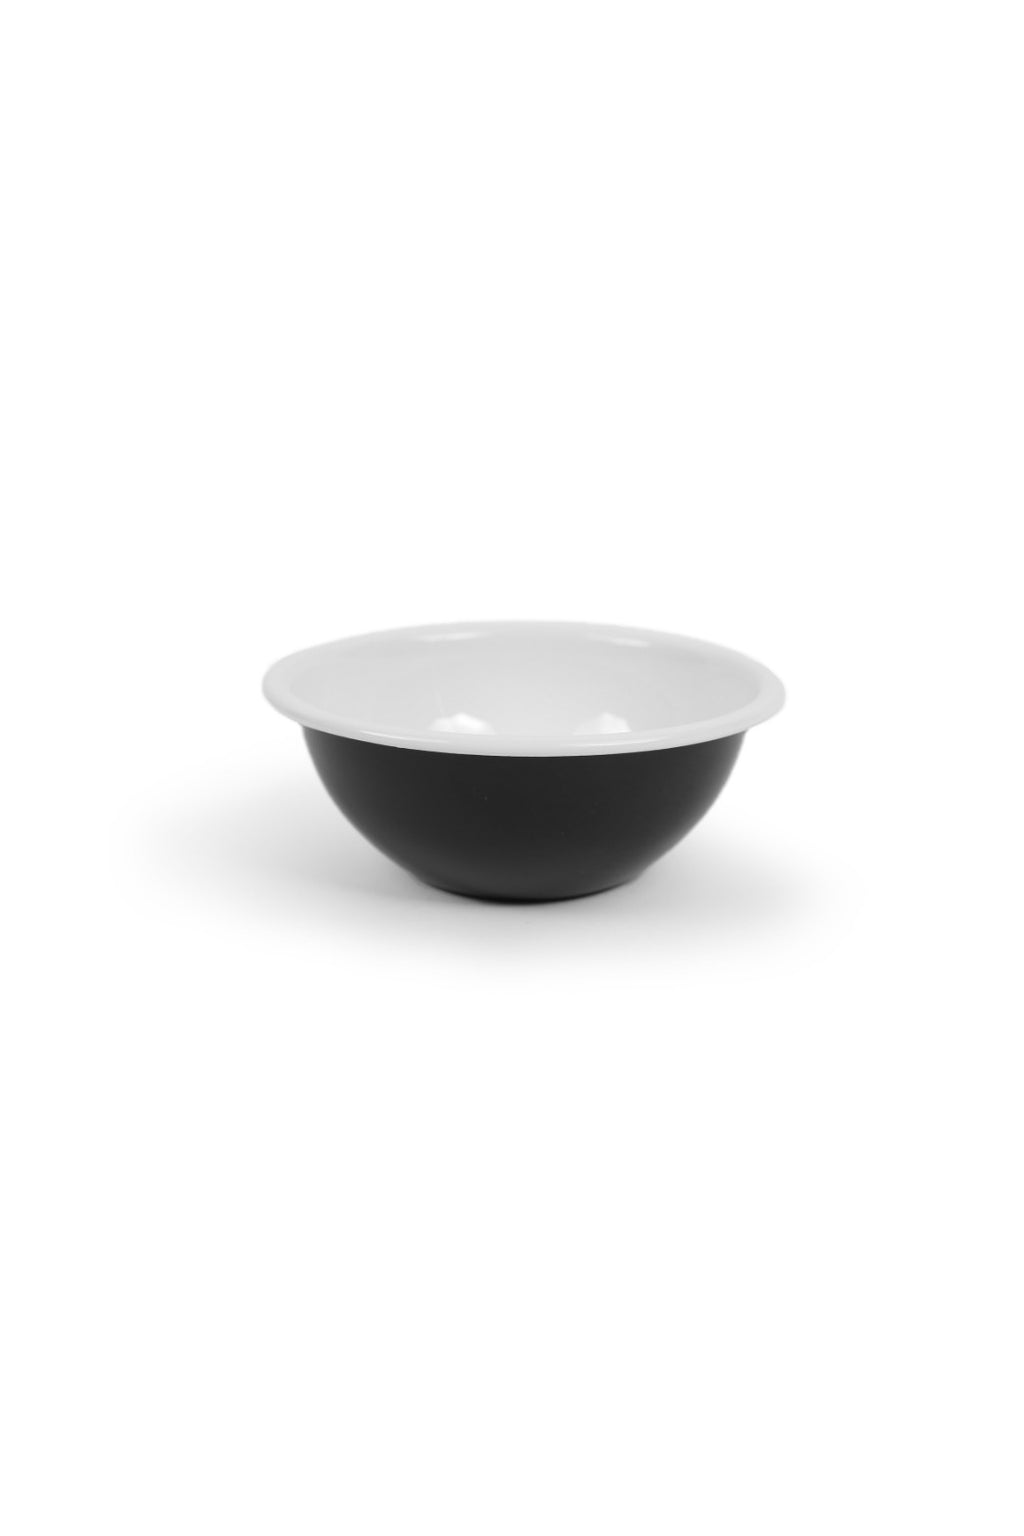 Crow Canyon Home Cereal Bowl - Pacifica Black